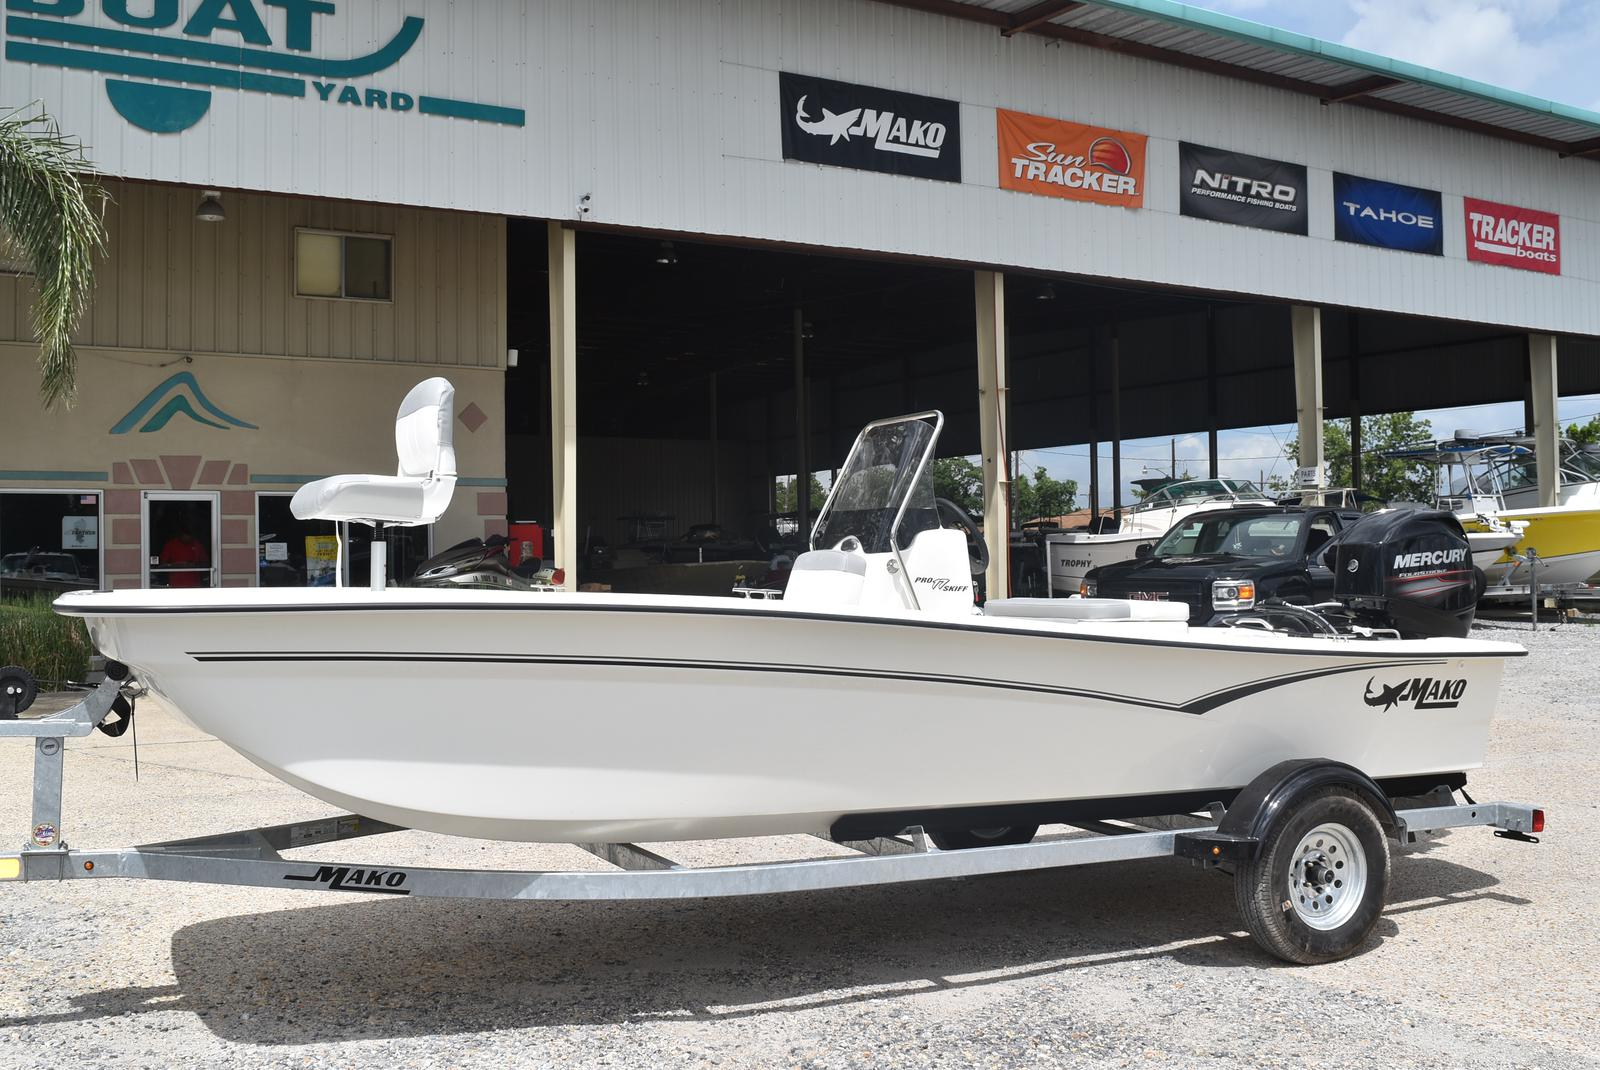 2020 Mako boat for sale, model of the boat is Pro Skiff 17, 75 ELPT & Image # 122 of 702